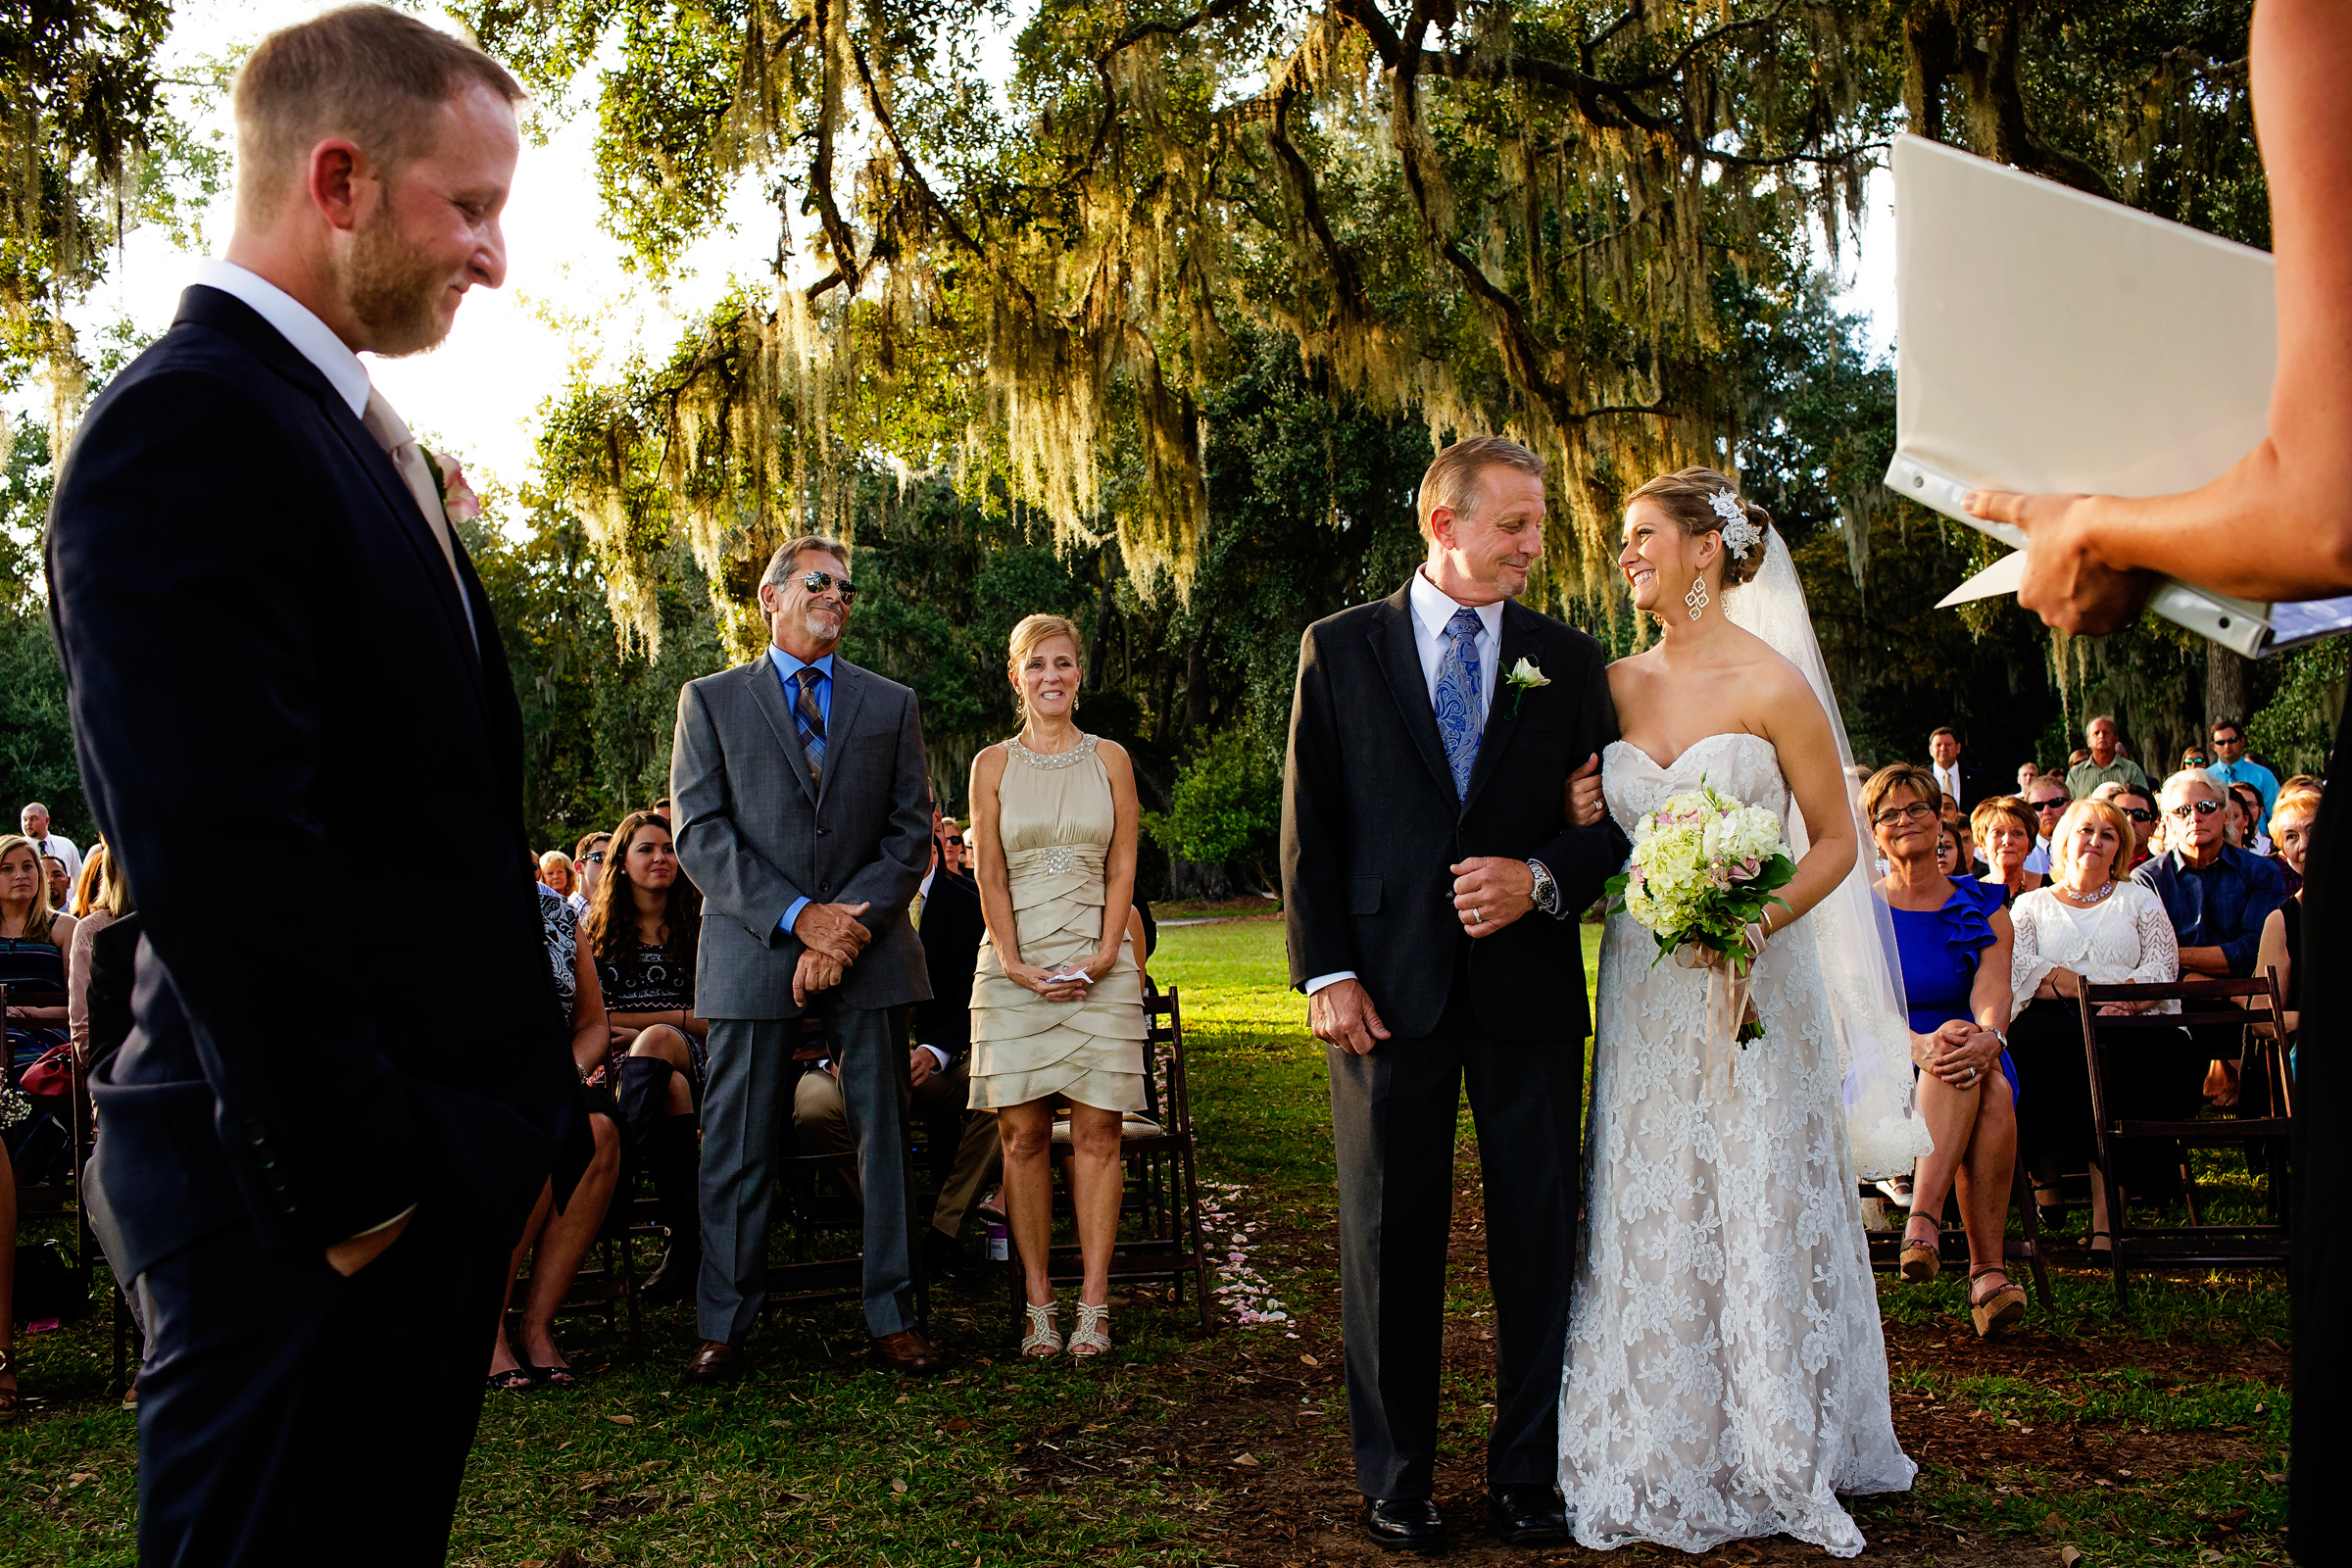 Bride and groom in the outdoor aisle - photo by Chrisman Studios